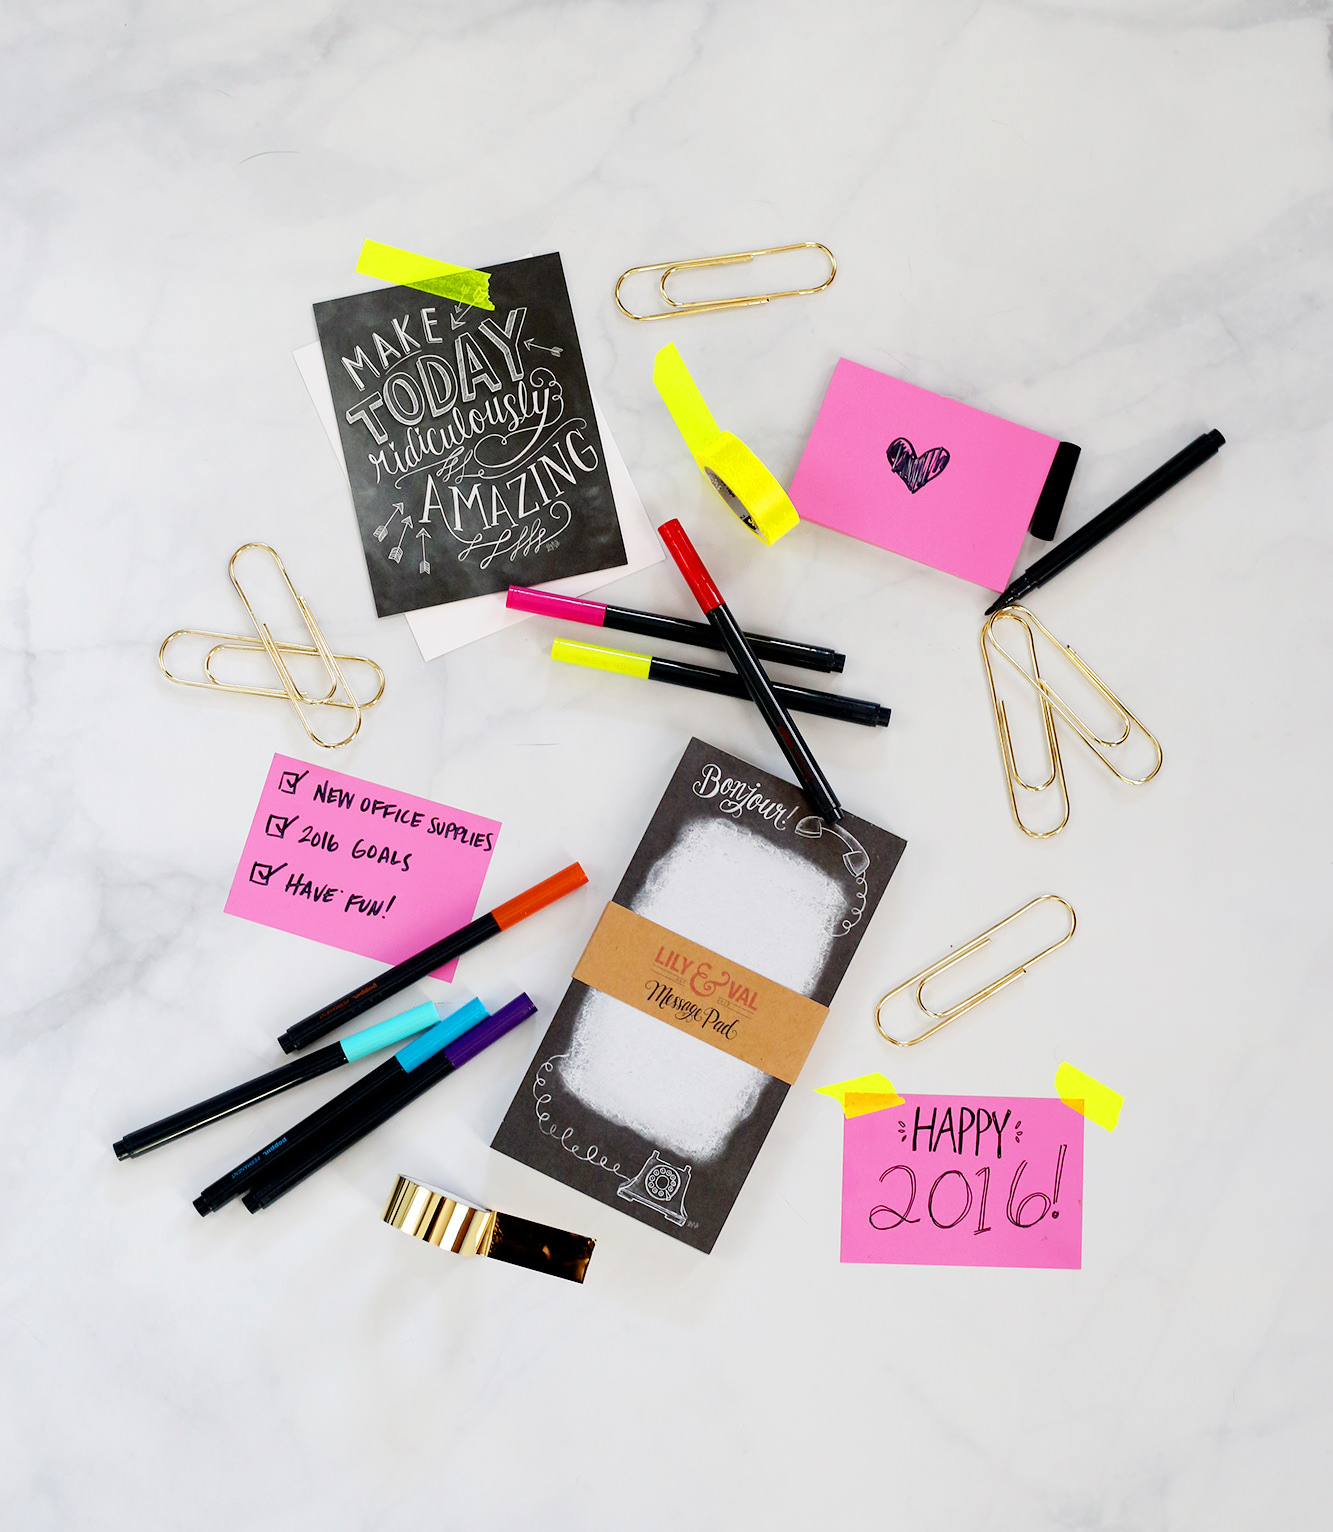 January's Happy Mail is all about the new year and the new office supplies to get you motivated for 2016! Enter to win!